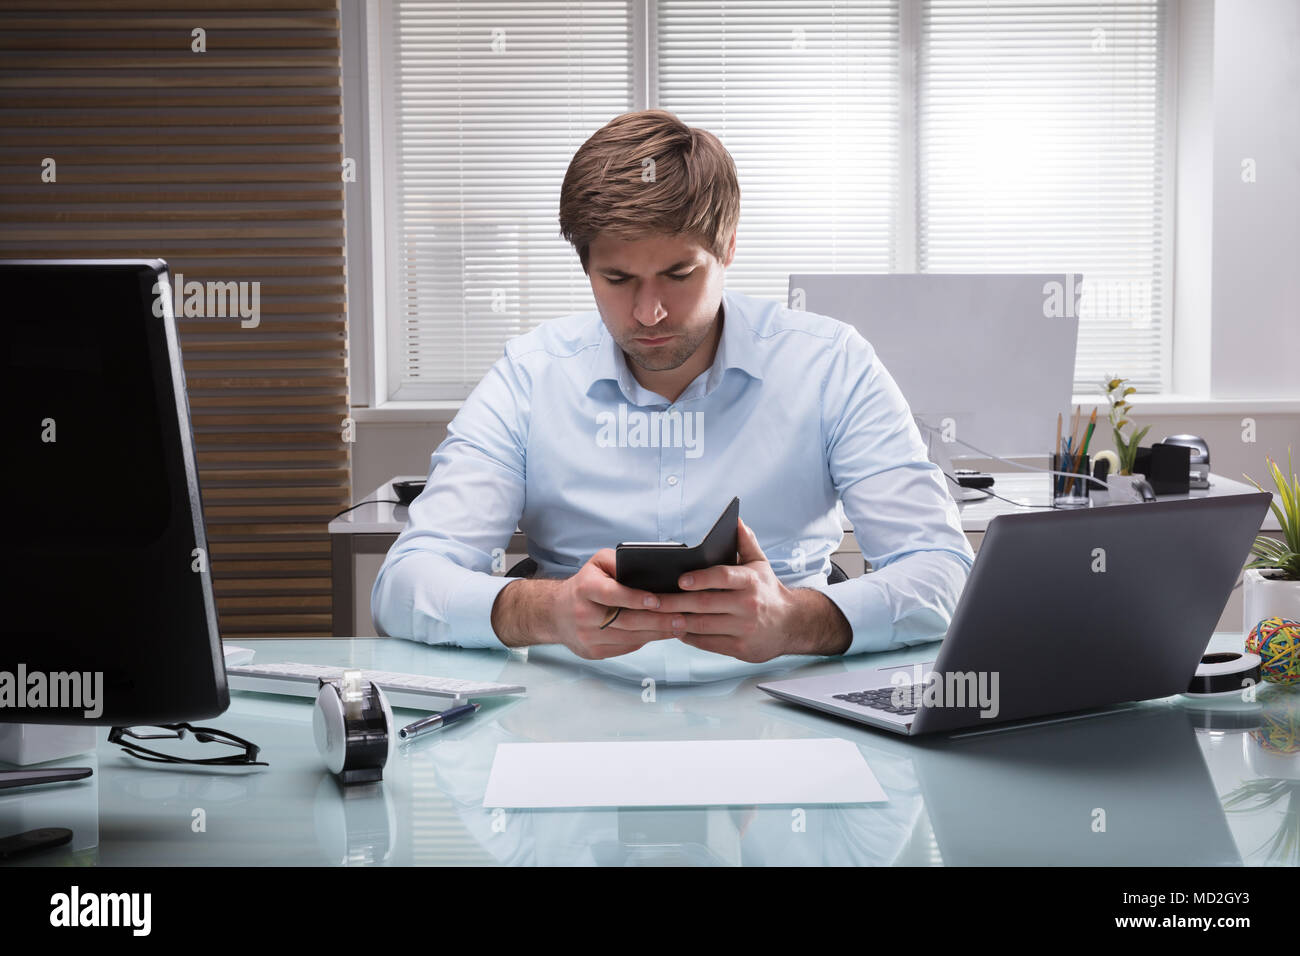 Young Businessman Sitting In Office Using Mobile Phone Stock Photo